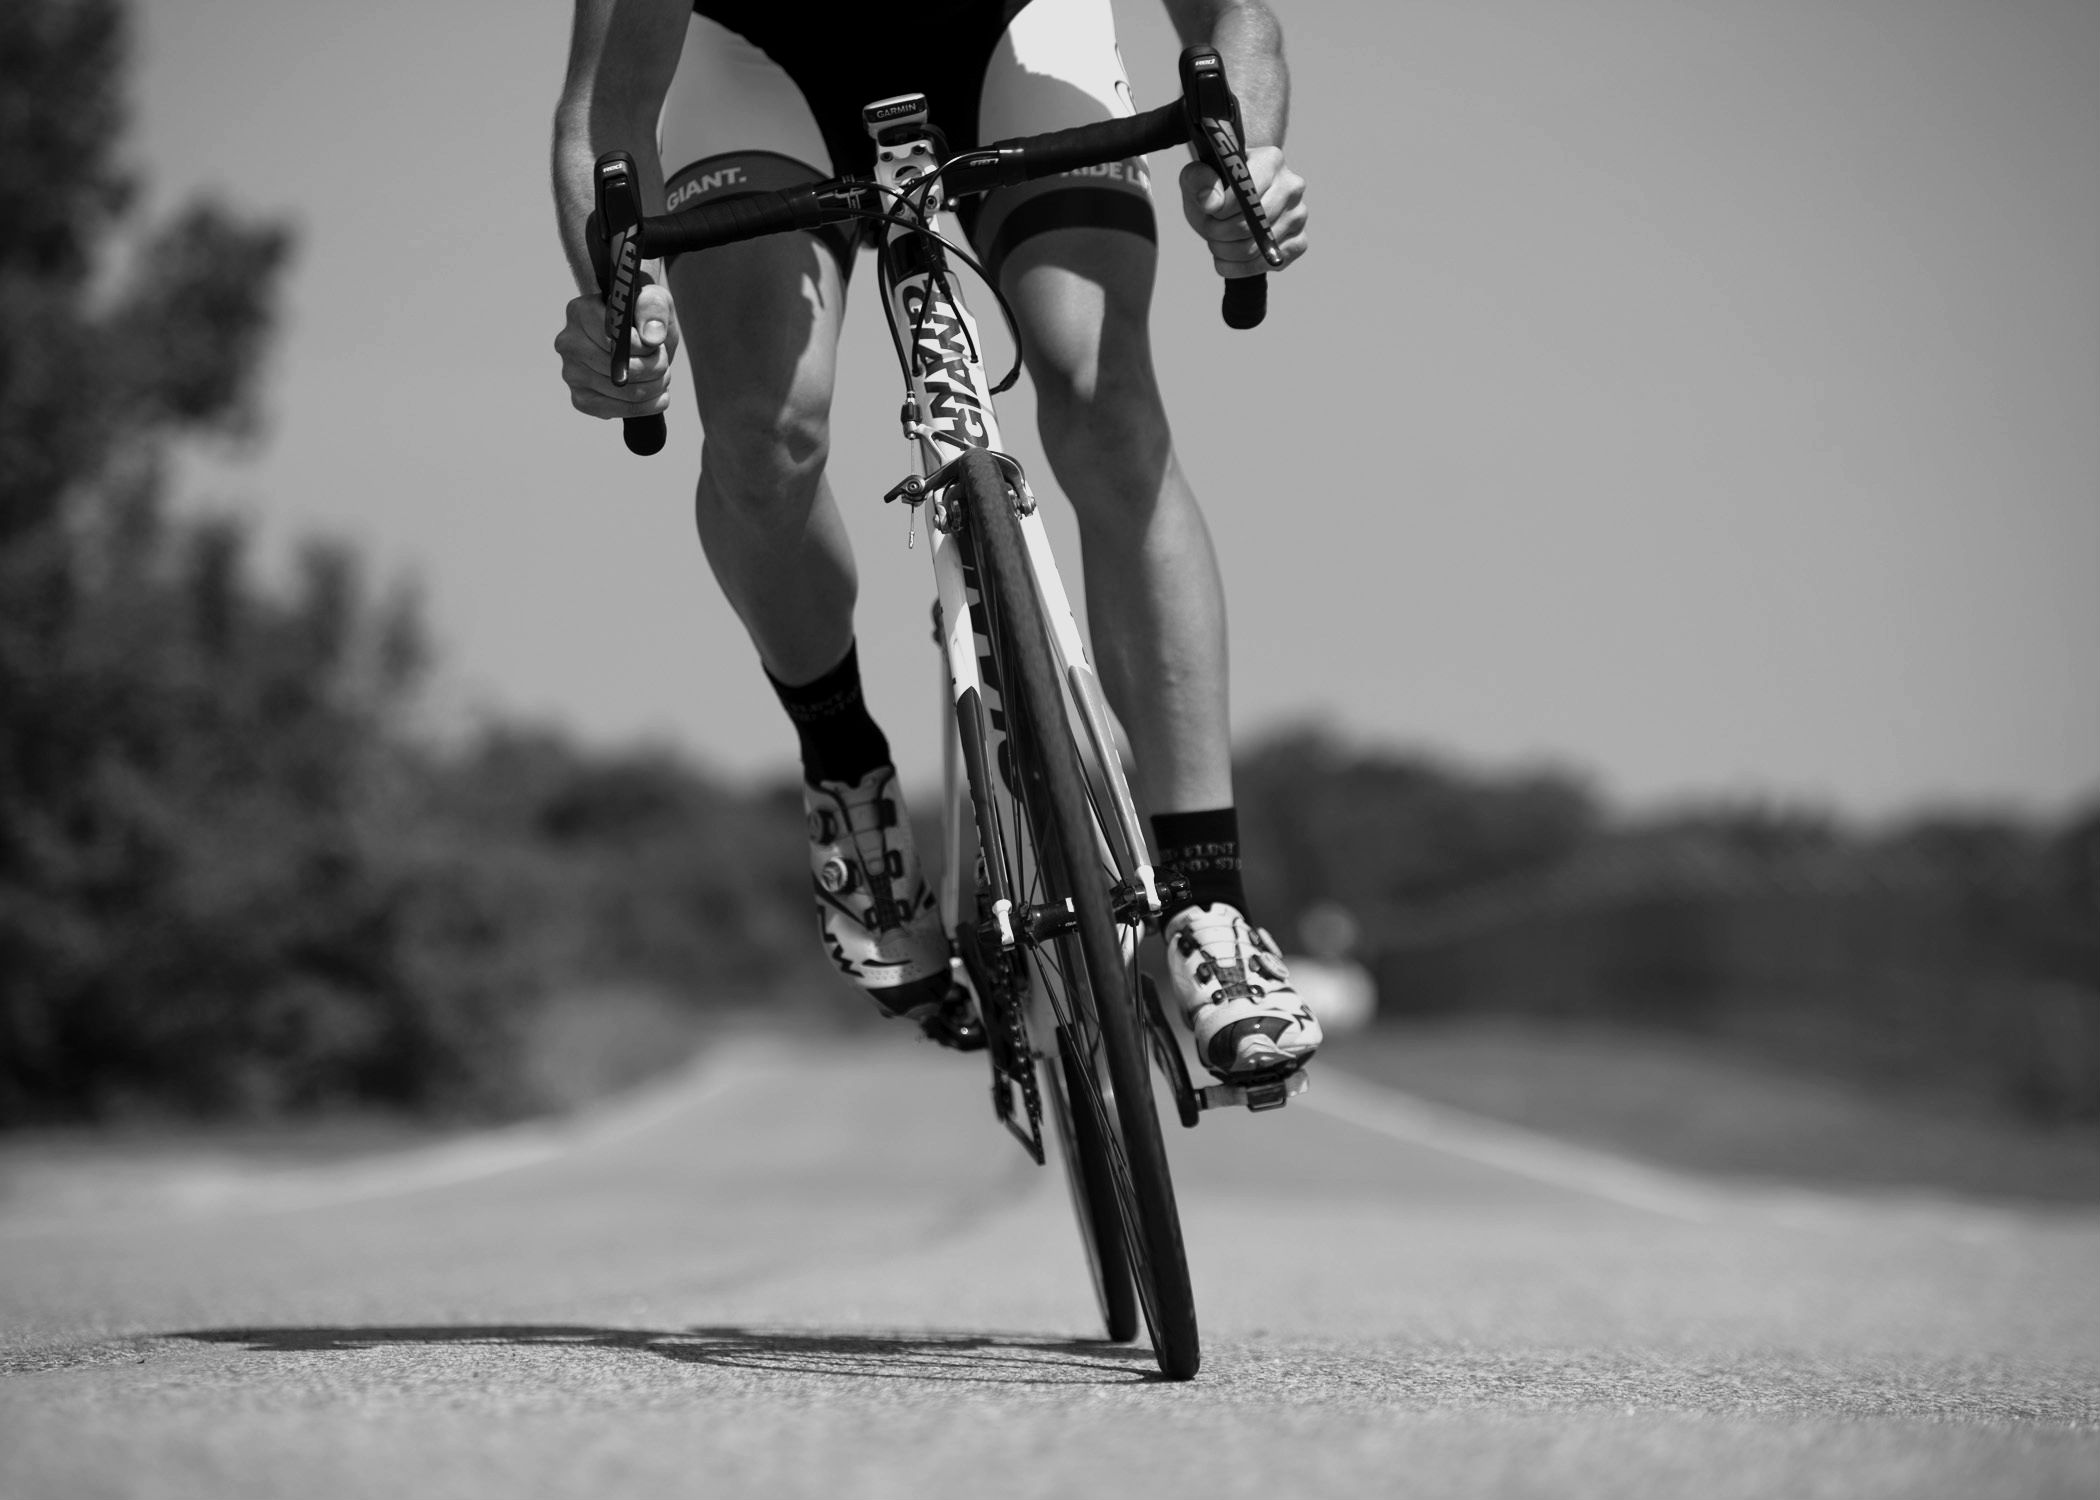 BW_cycling-bicycle-riding-sport-38296.jpg